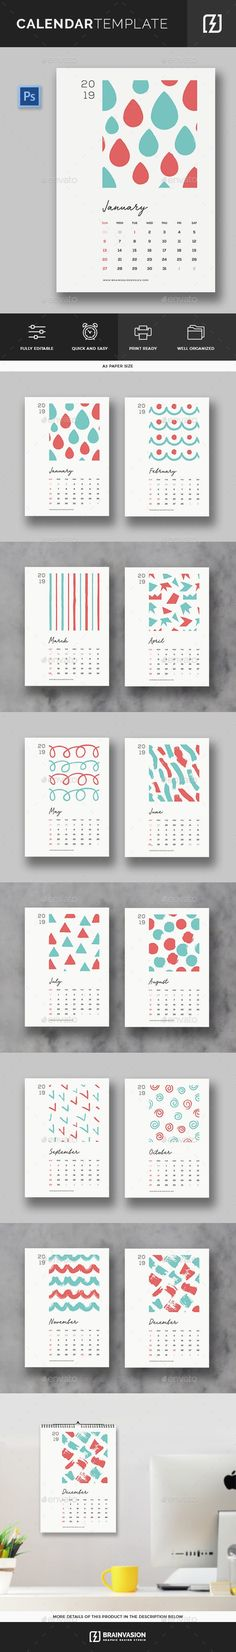 Buy 2019 Calendar Template by Brainvasion on GraphicRiver. Minimal and creative calendar template. Features 12 Psd files paper size Print Ready With Bleeds Work with L. Office Calendar, Calendar 2018, Desk Calendars, Creative Calendar, Anime Artwork, Paper Size, Decoration, Illustrations, Calendar Templates